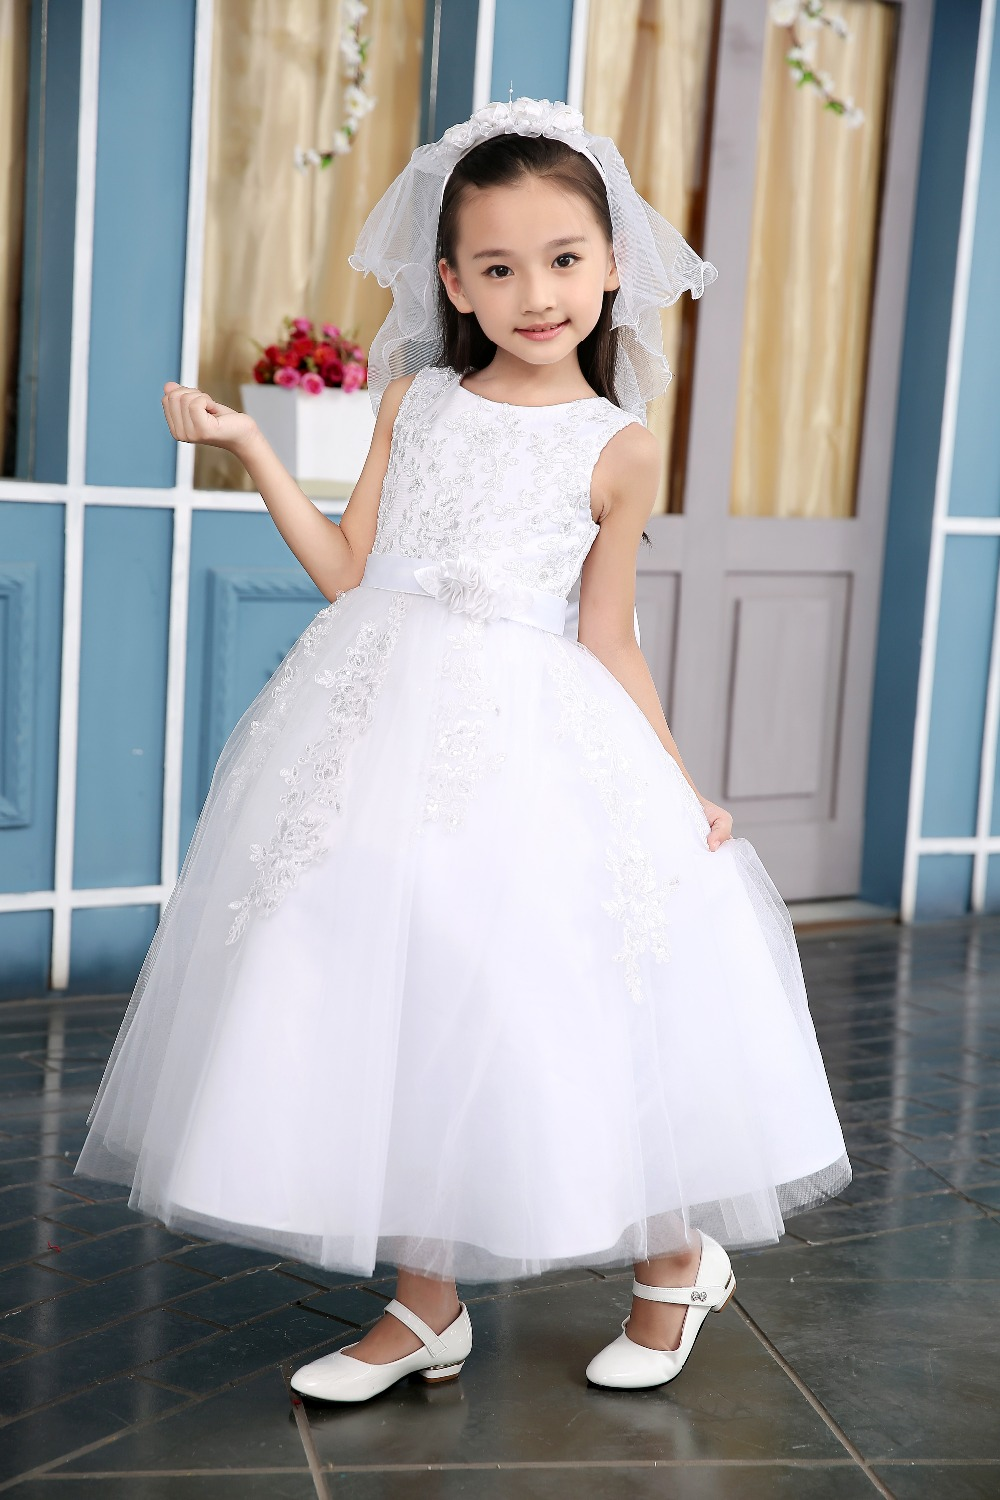 Dressy Dresses Girls Promotion-Shop for Promotional Dressy Dresses ...